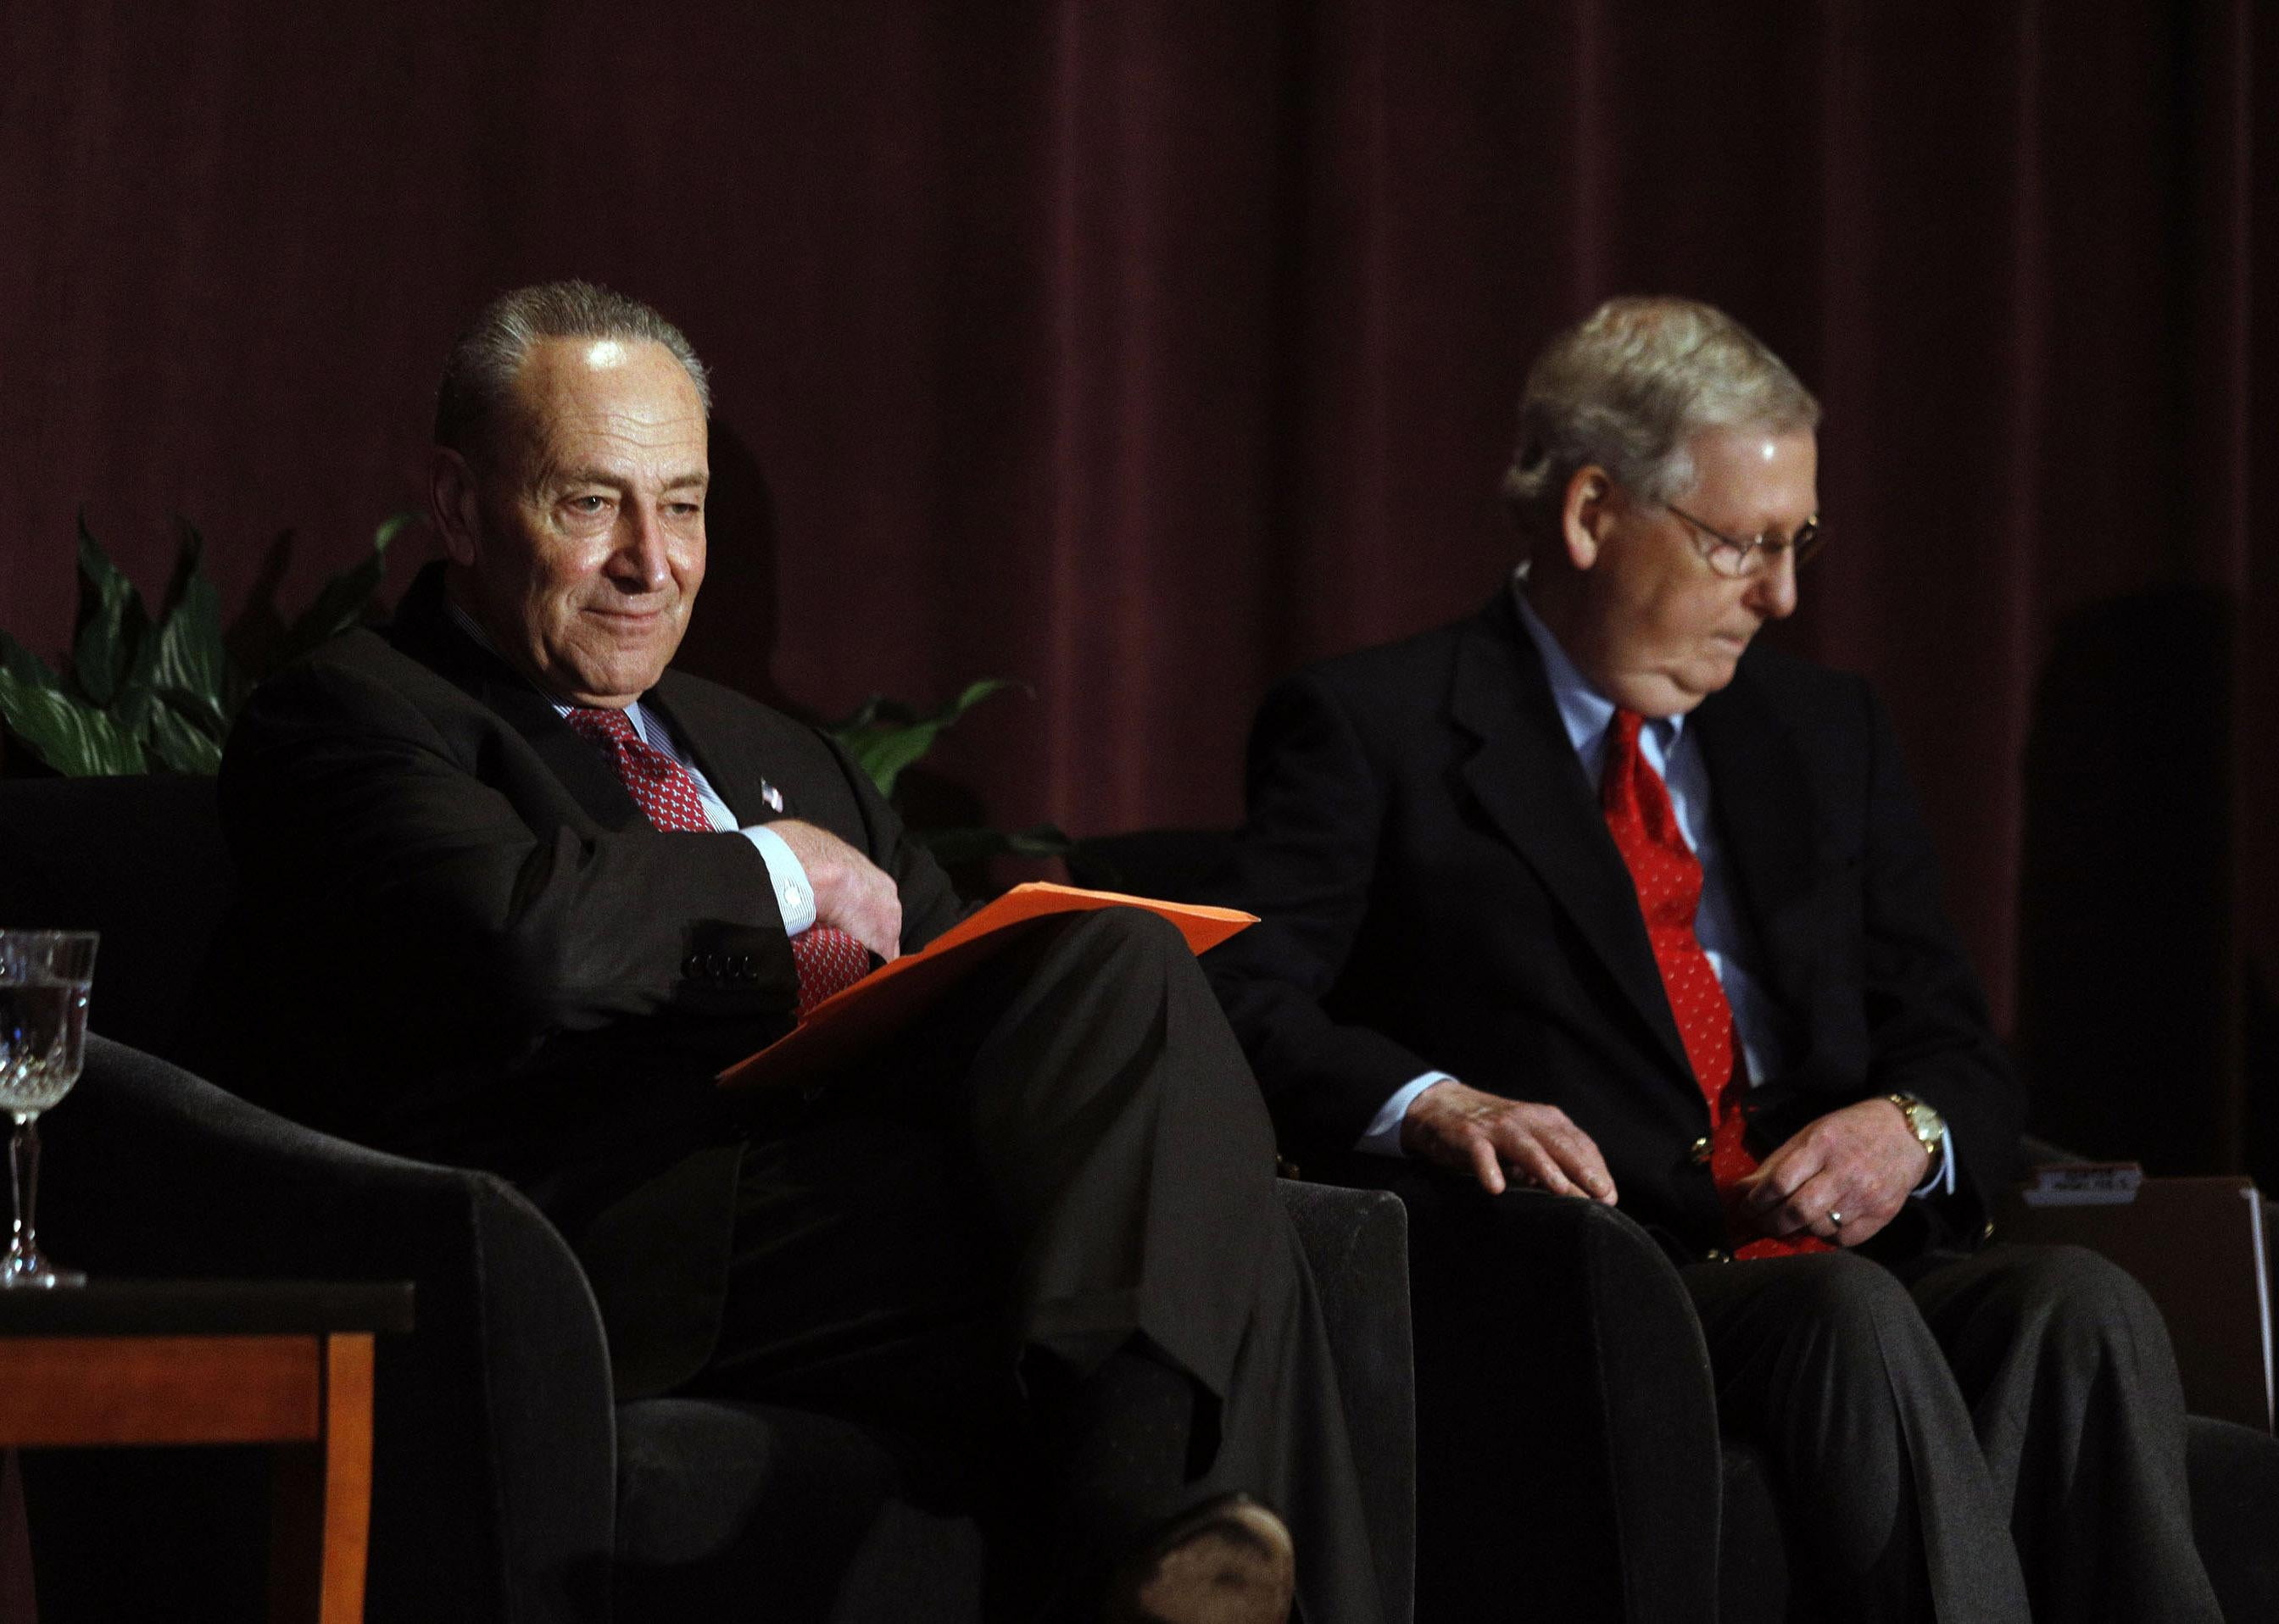 Mitch McConnell and Chuck Schumer sit on a stage in front of plants and a curtain.